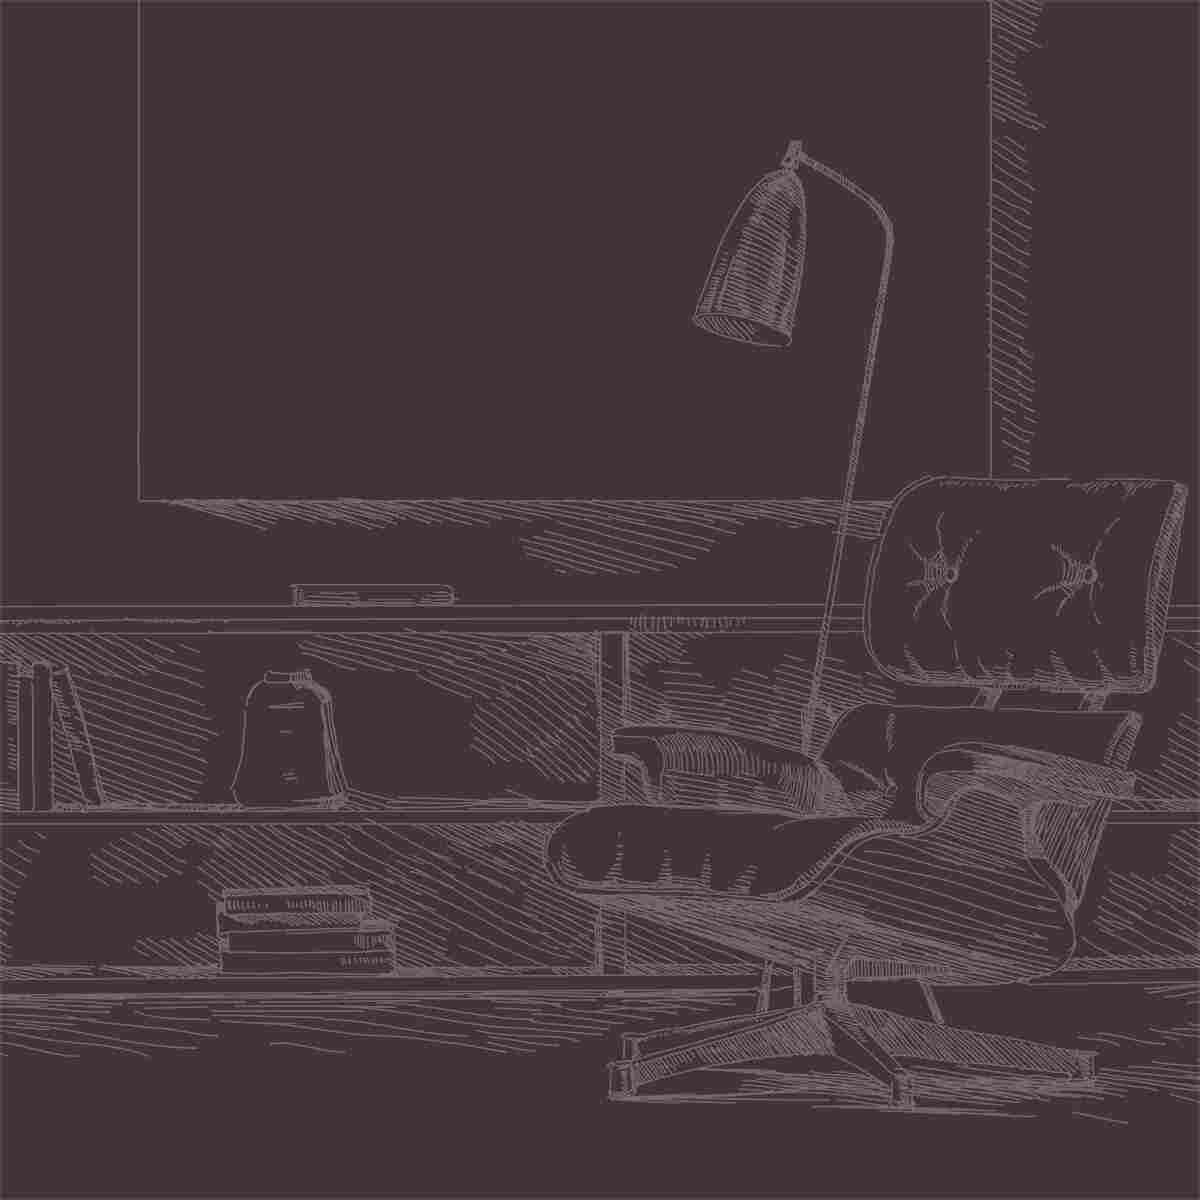 https://akldecor.com/wp-content/uploads/2017/05/minimalist-image-team-member-04-large.jpg